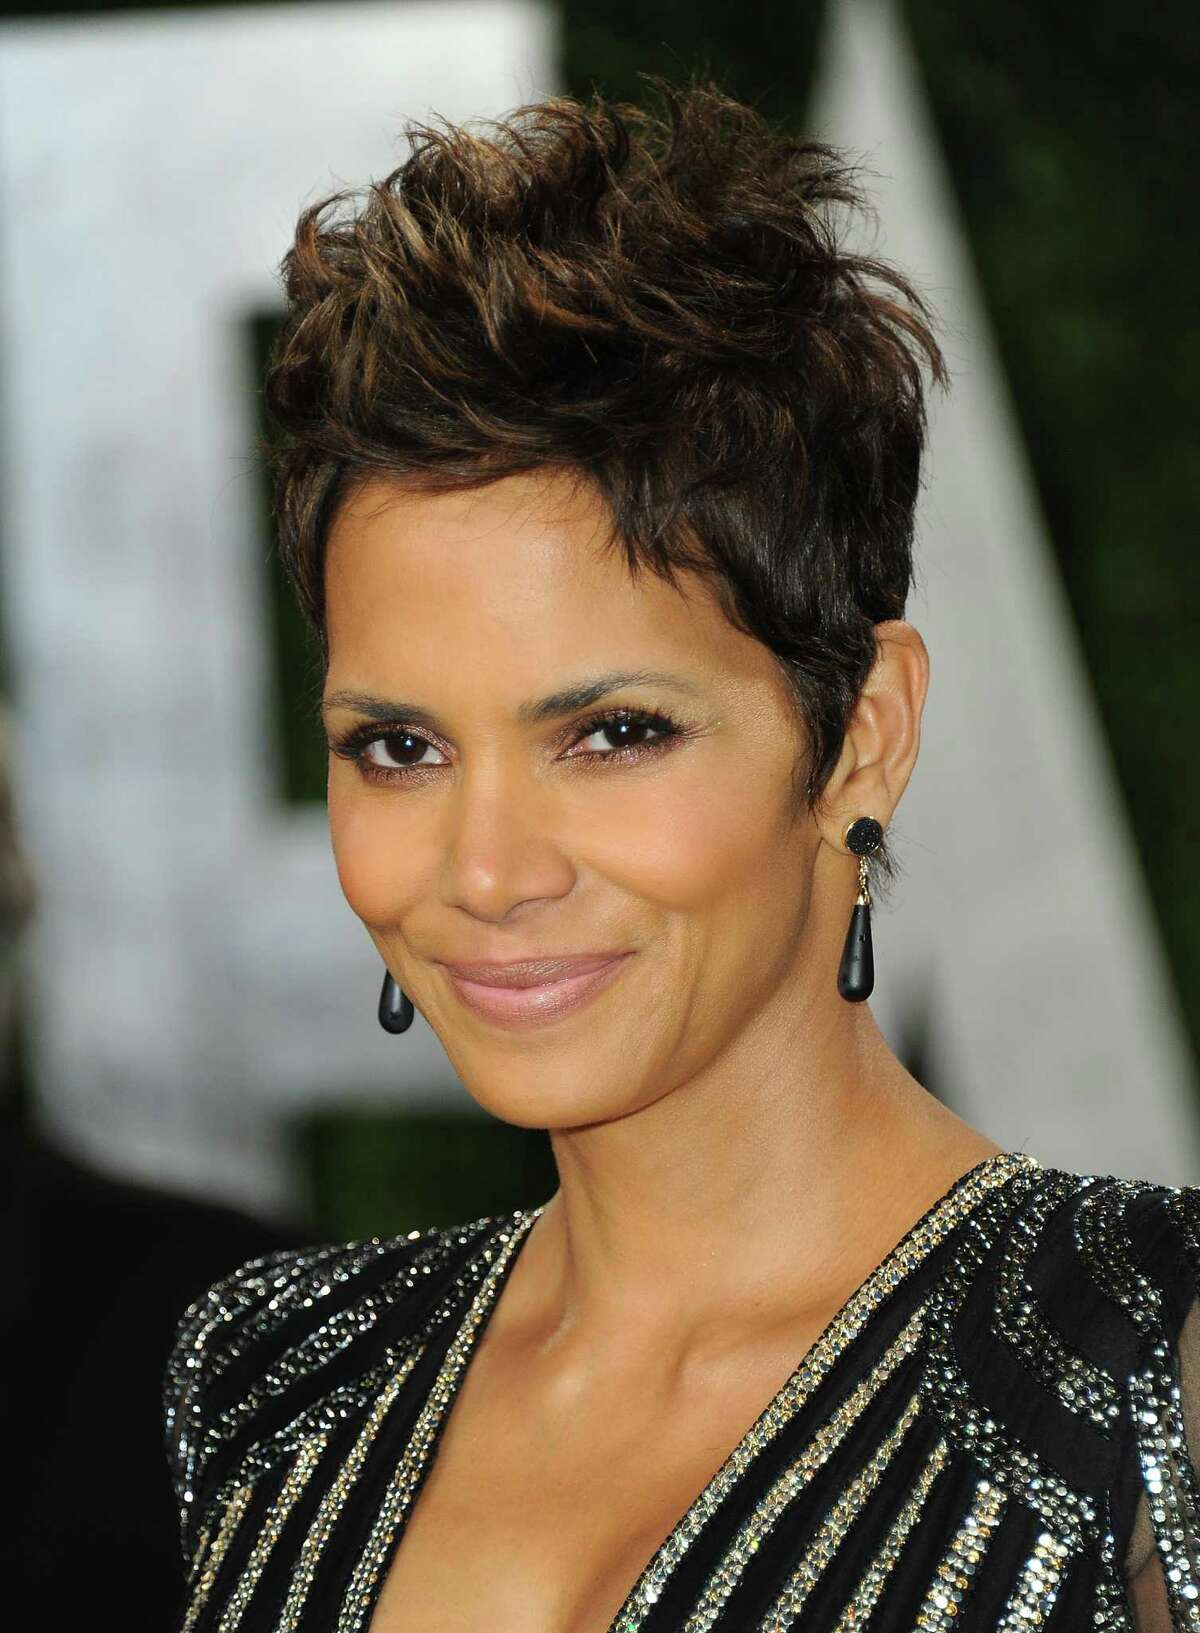 Actress Halle Berry arrives at the 2013 Vanity Fair Oscar party on Sunday, Feb. 24 2013 at the Sunset Plaza Hotel in West Hollywood, Calif. (Photo by Jordan Strauss/Invision/AP)